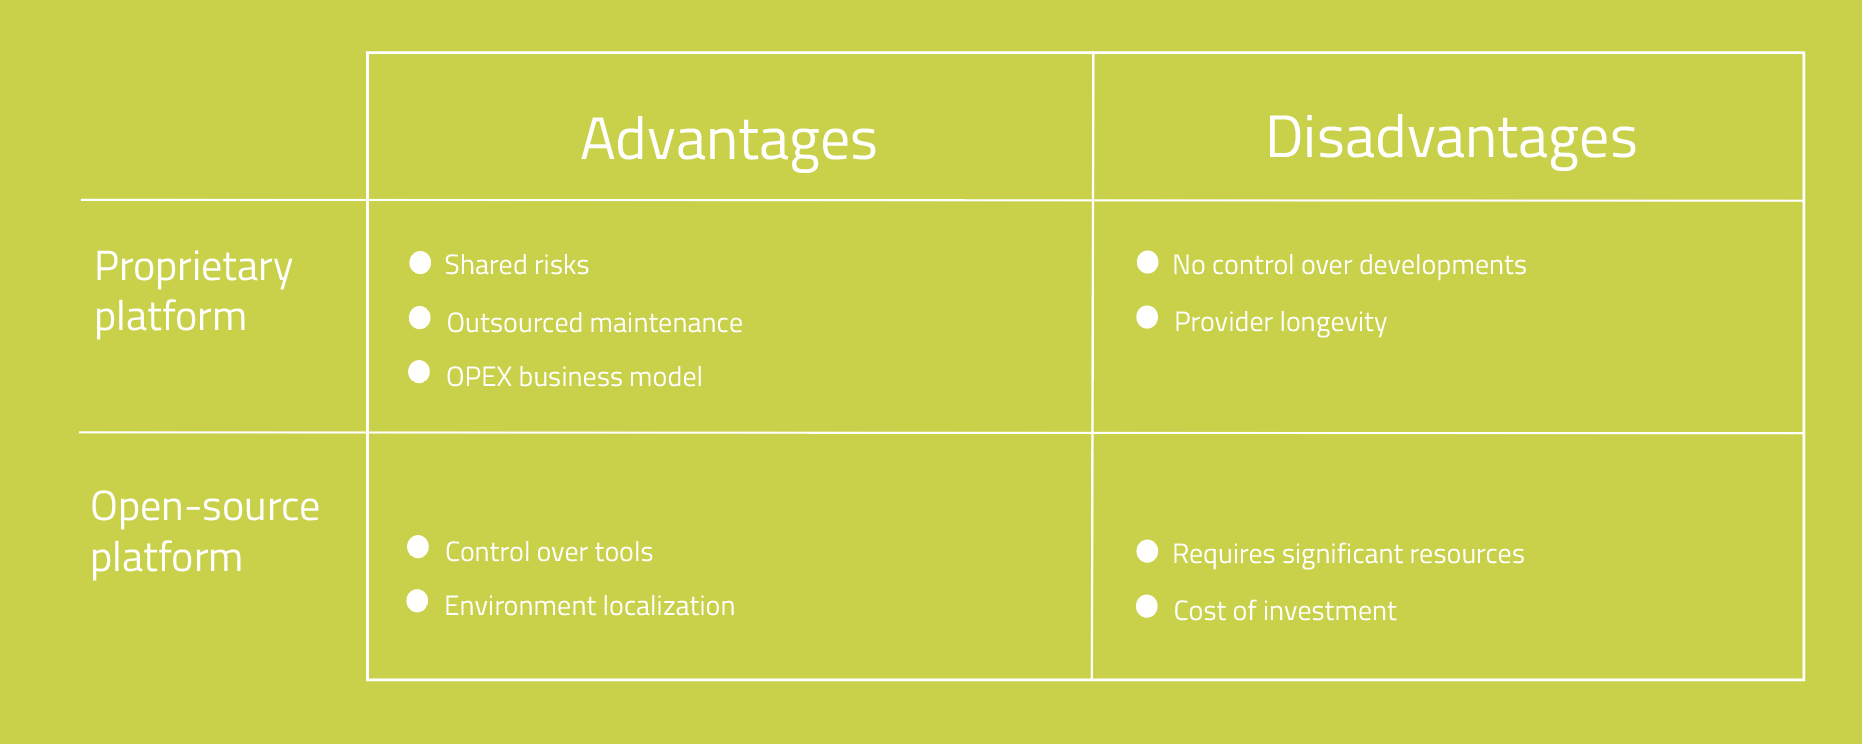 advantages and disadvantages between paas and open source platforms